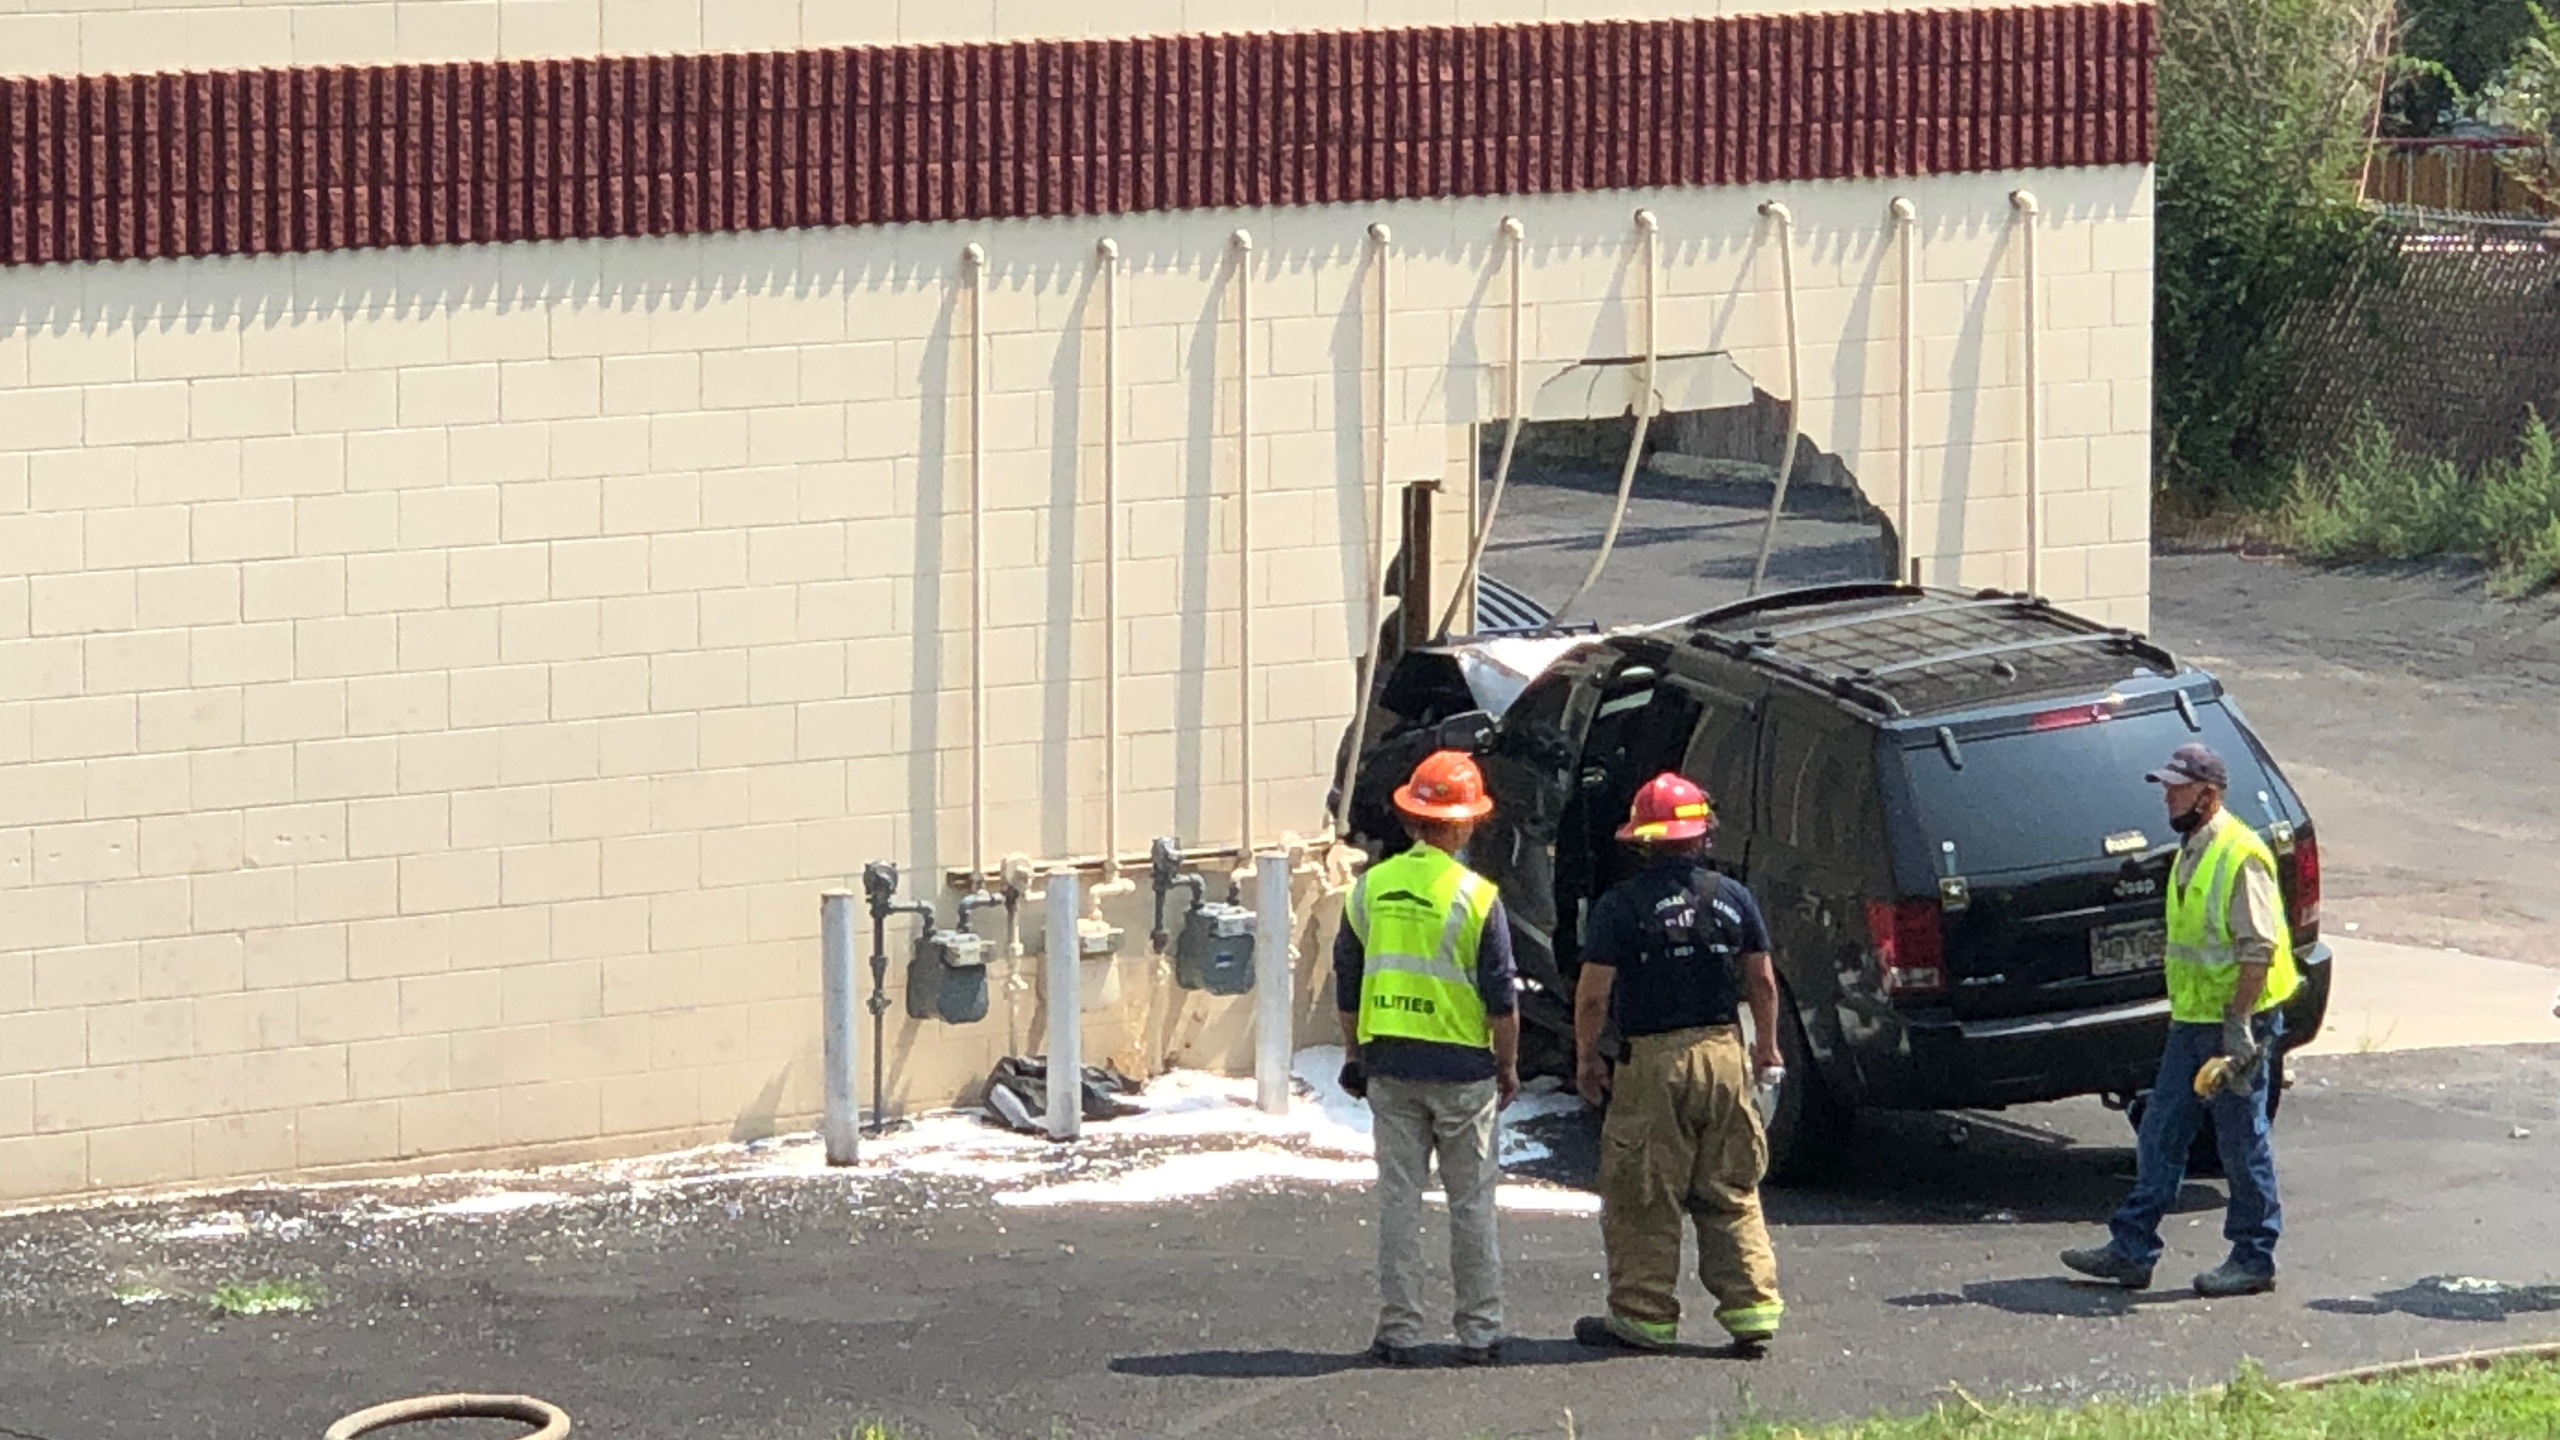 Crews on the scene of a crash that caused a gas leak in the area of Chelton Road and Pine Tree Square Tuesday afternoon. / Mike Duran - FOX21 News